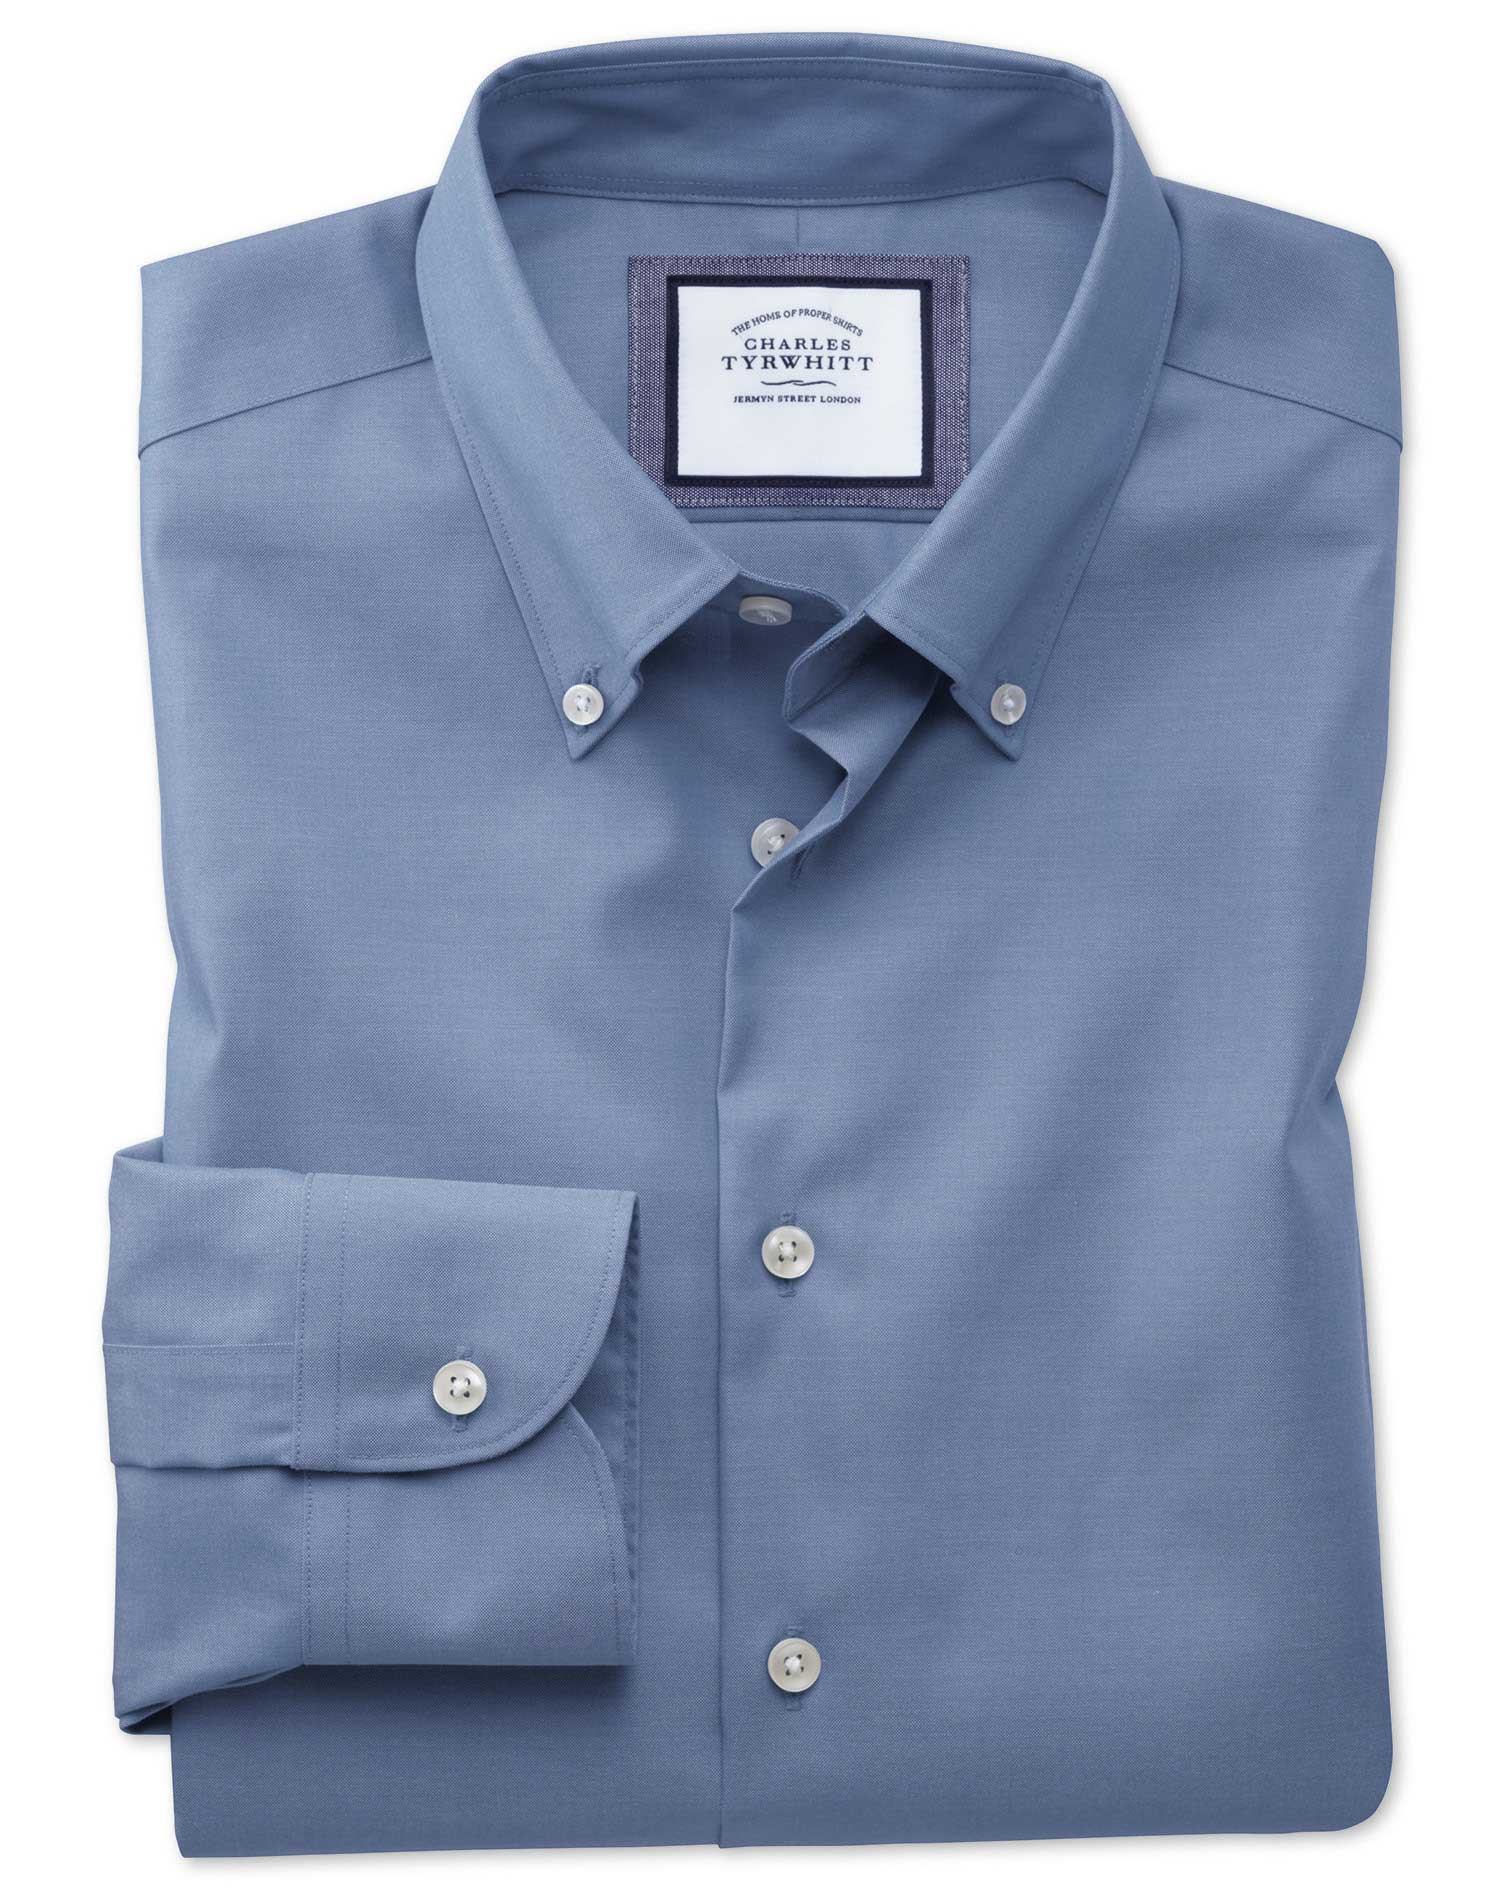 Classic Fit Button-Down Business Casual Non-Iron Mid Blue Cotton Formal Shirt Single Cuff Size 15.5/